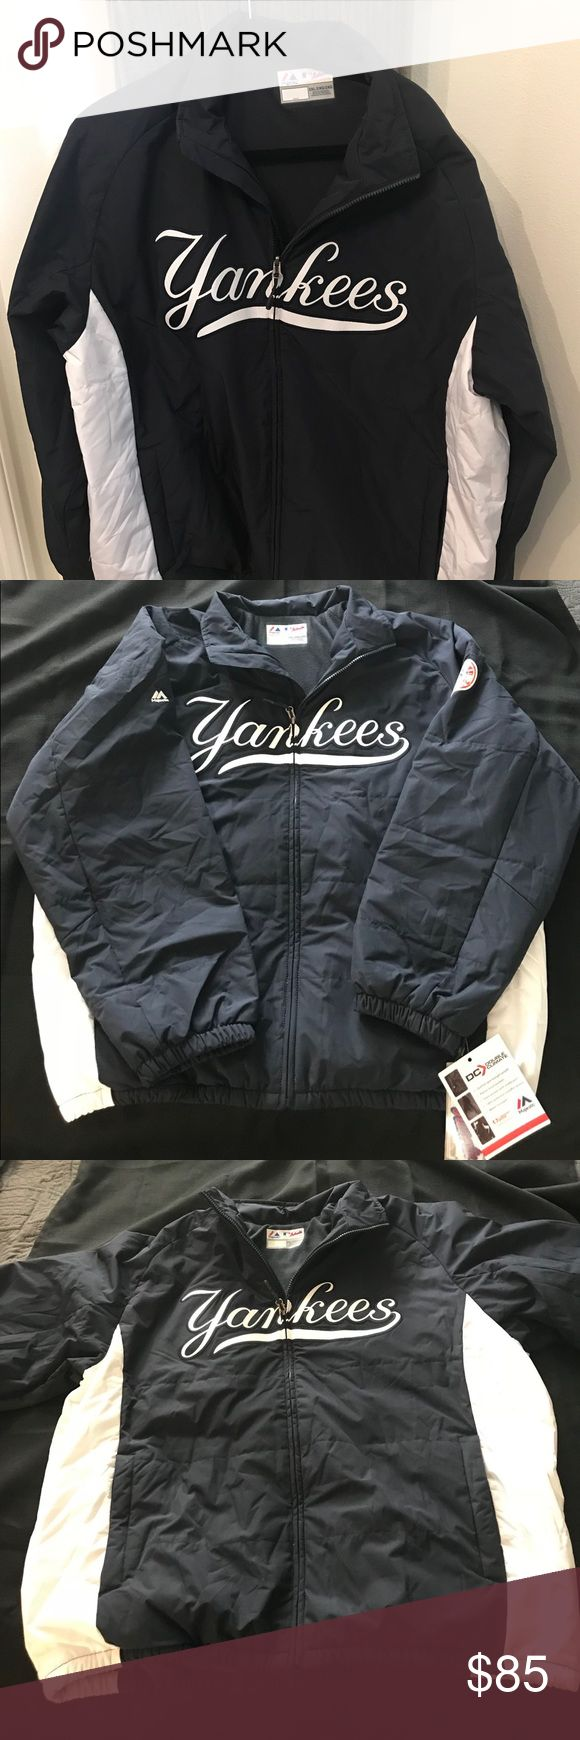 Majestic MLB Authentic New York Yankees Jacket New with tags officially licensed Majestic MLB Collection New York Yankees Jacket. One of the tags is the numbered and hologram seal showing authentic and the same jackets worn on field by MLB players. This Jacket is a zip up front with the double climate lining   Feel free to ask any questions Majestic Other